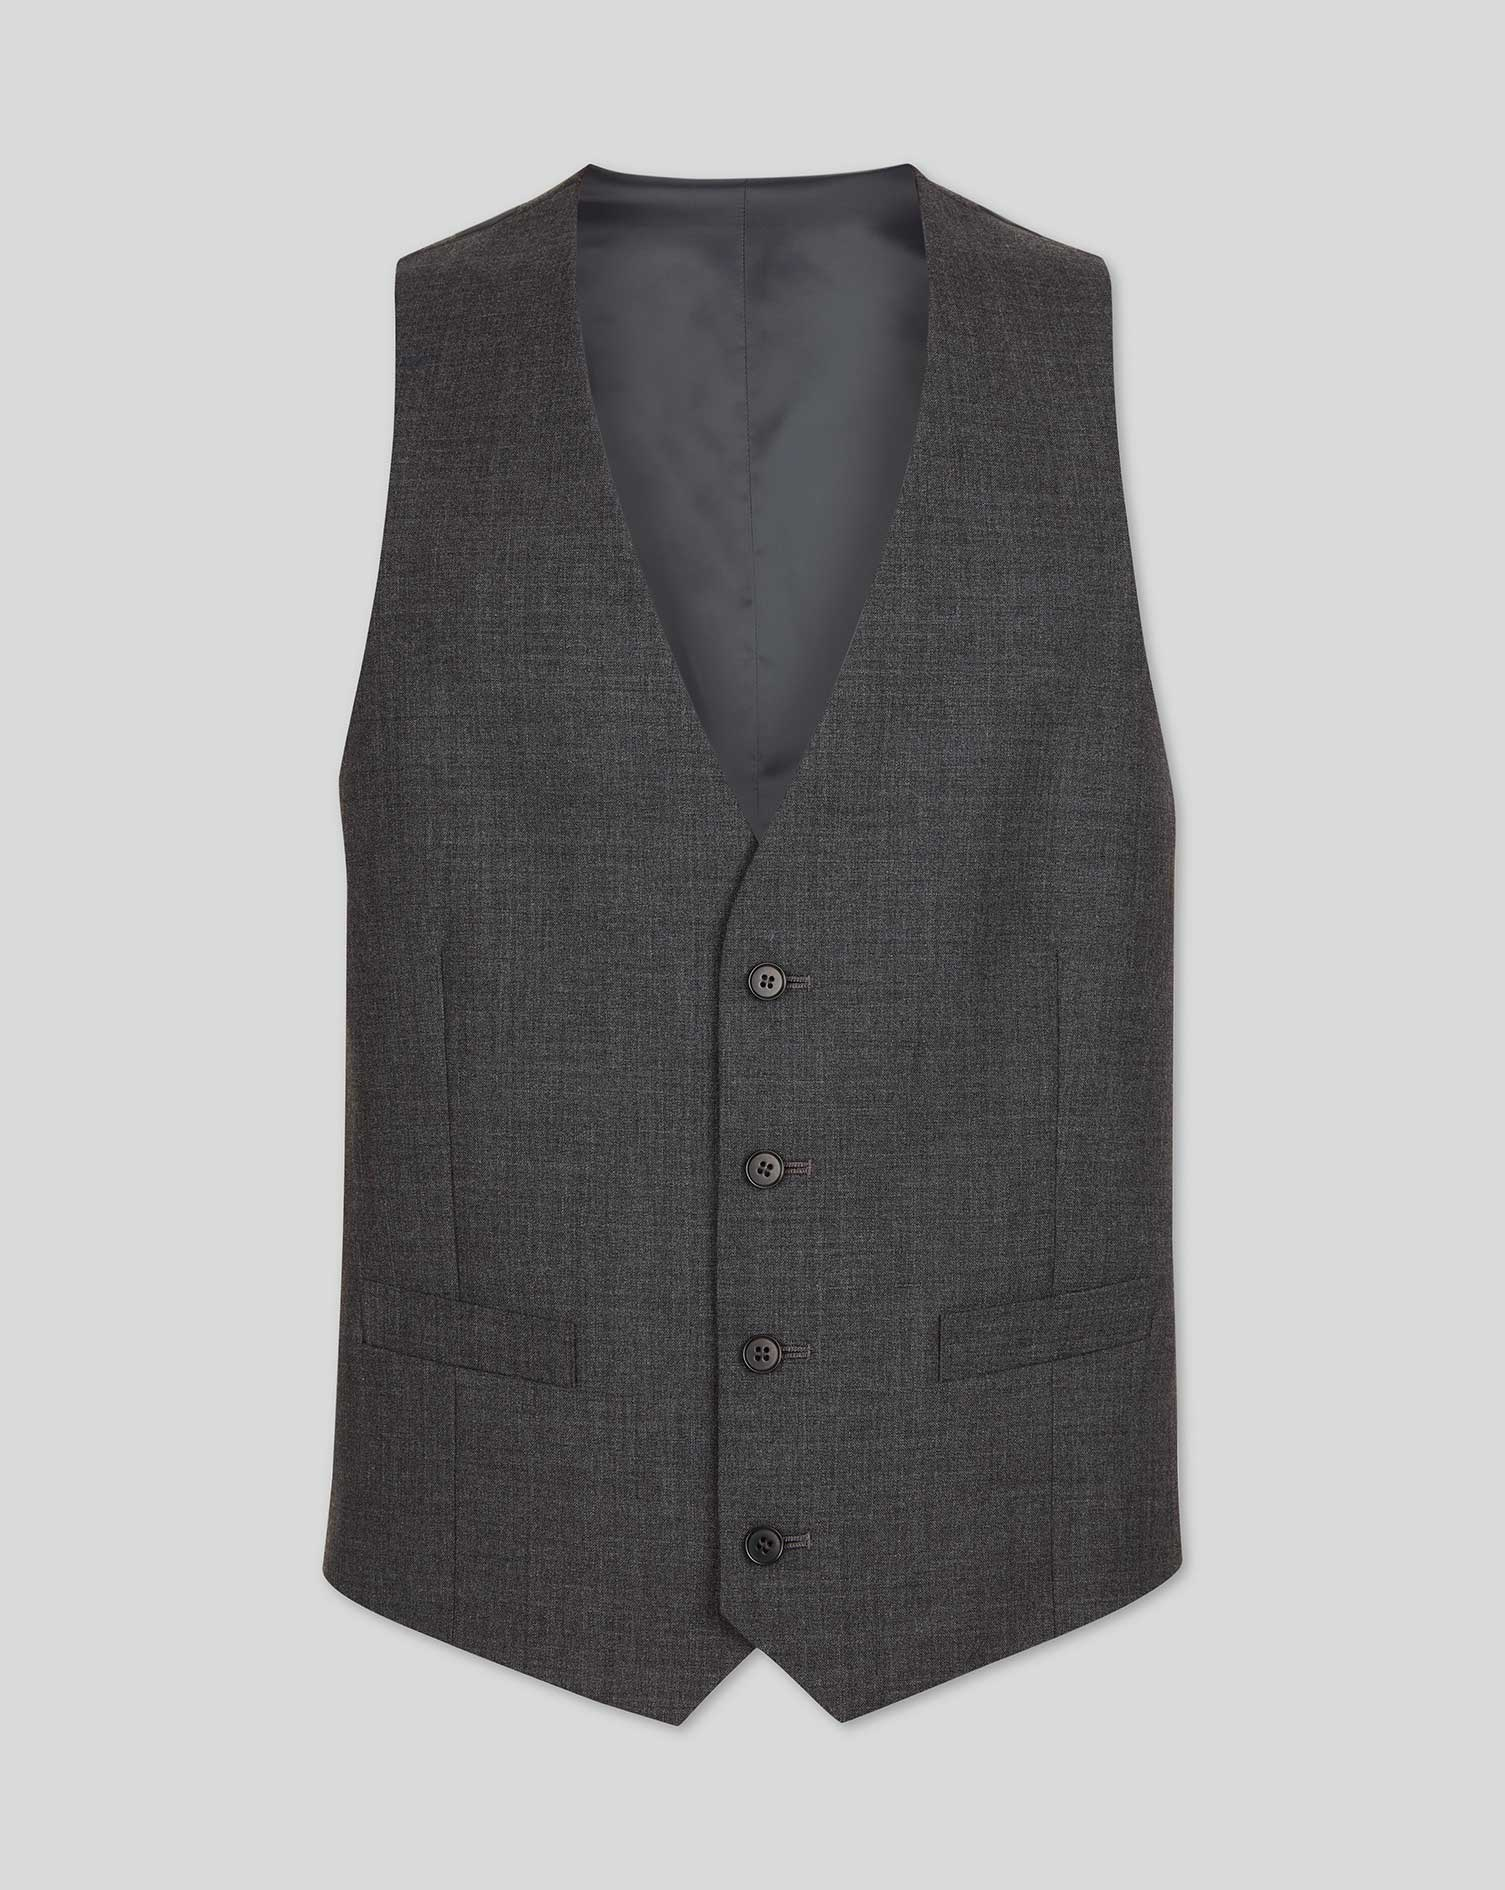 Grey Adjustable Fit Merino Business Suit Merino Wool Waistcoat Size w40 by Charles Tyrwhitt